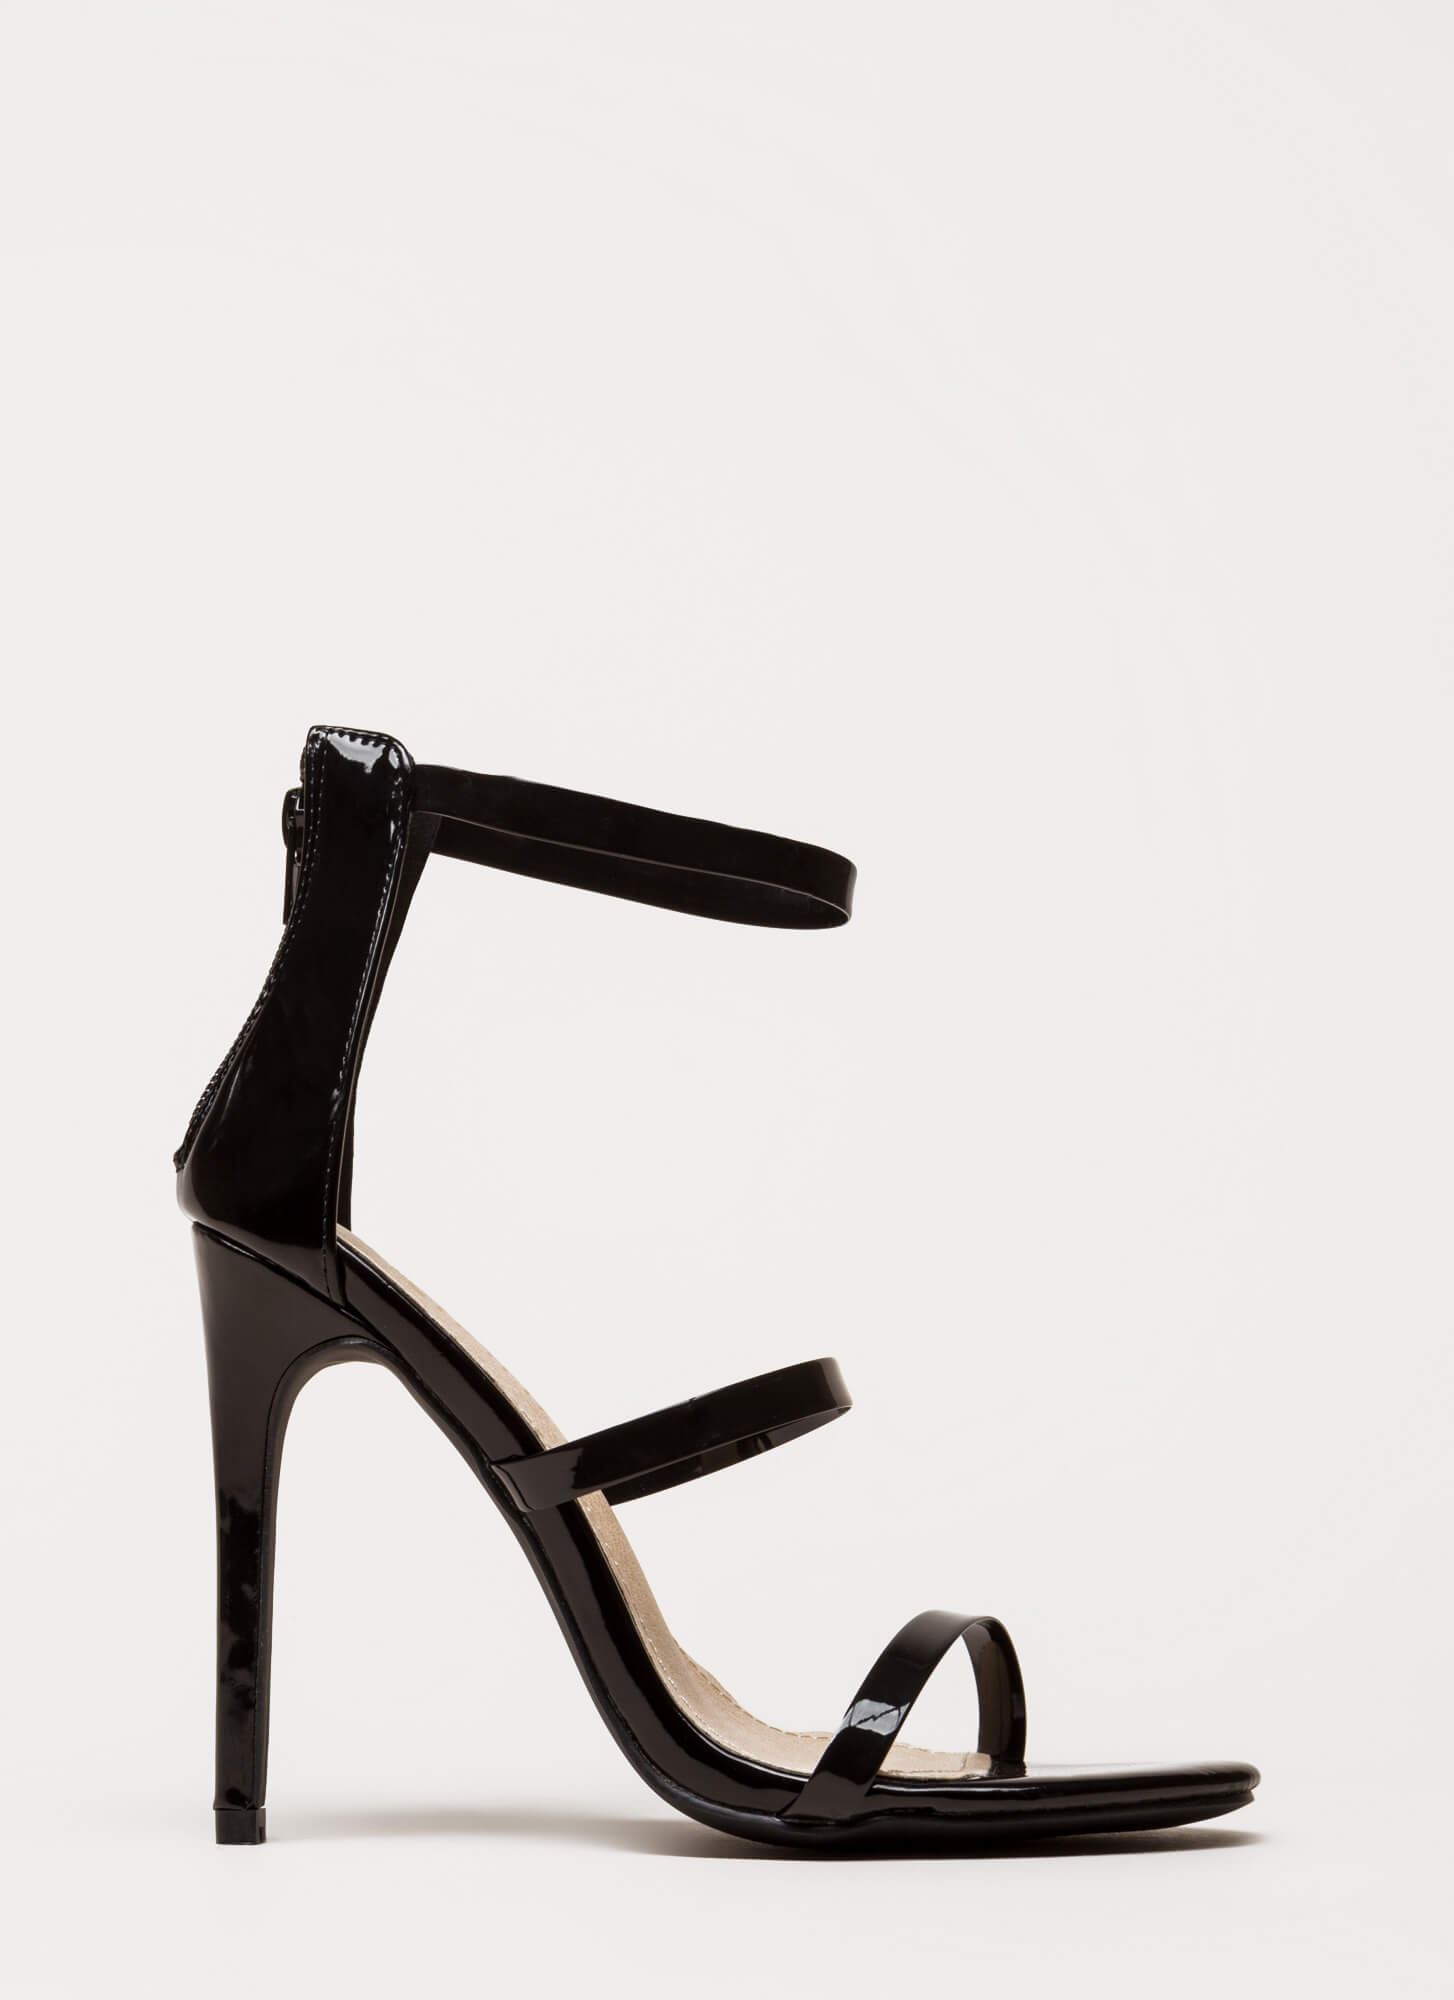 Clear As Day Strappy Stiletto Heels BLACK